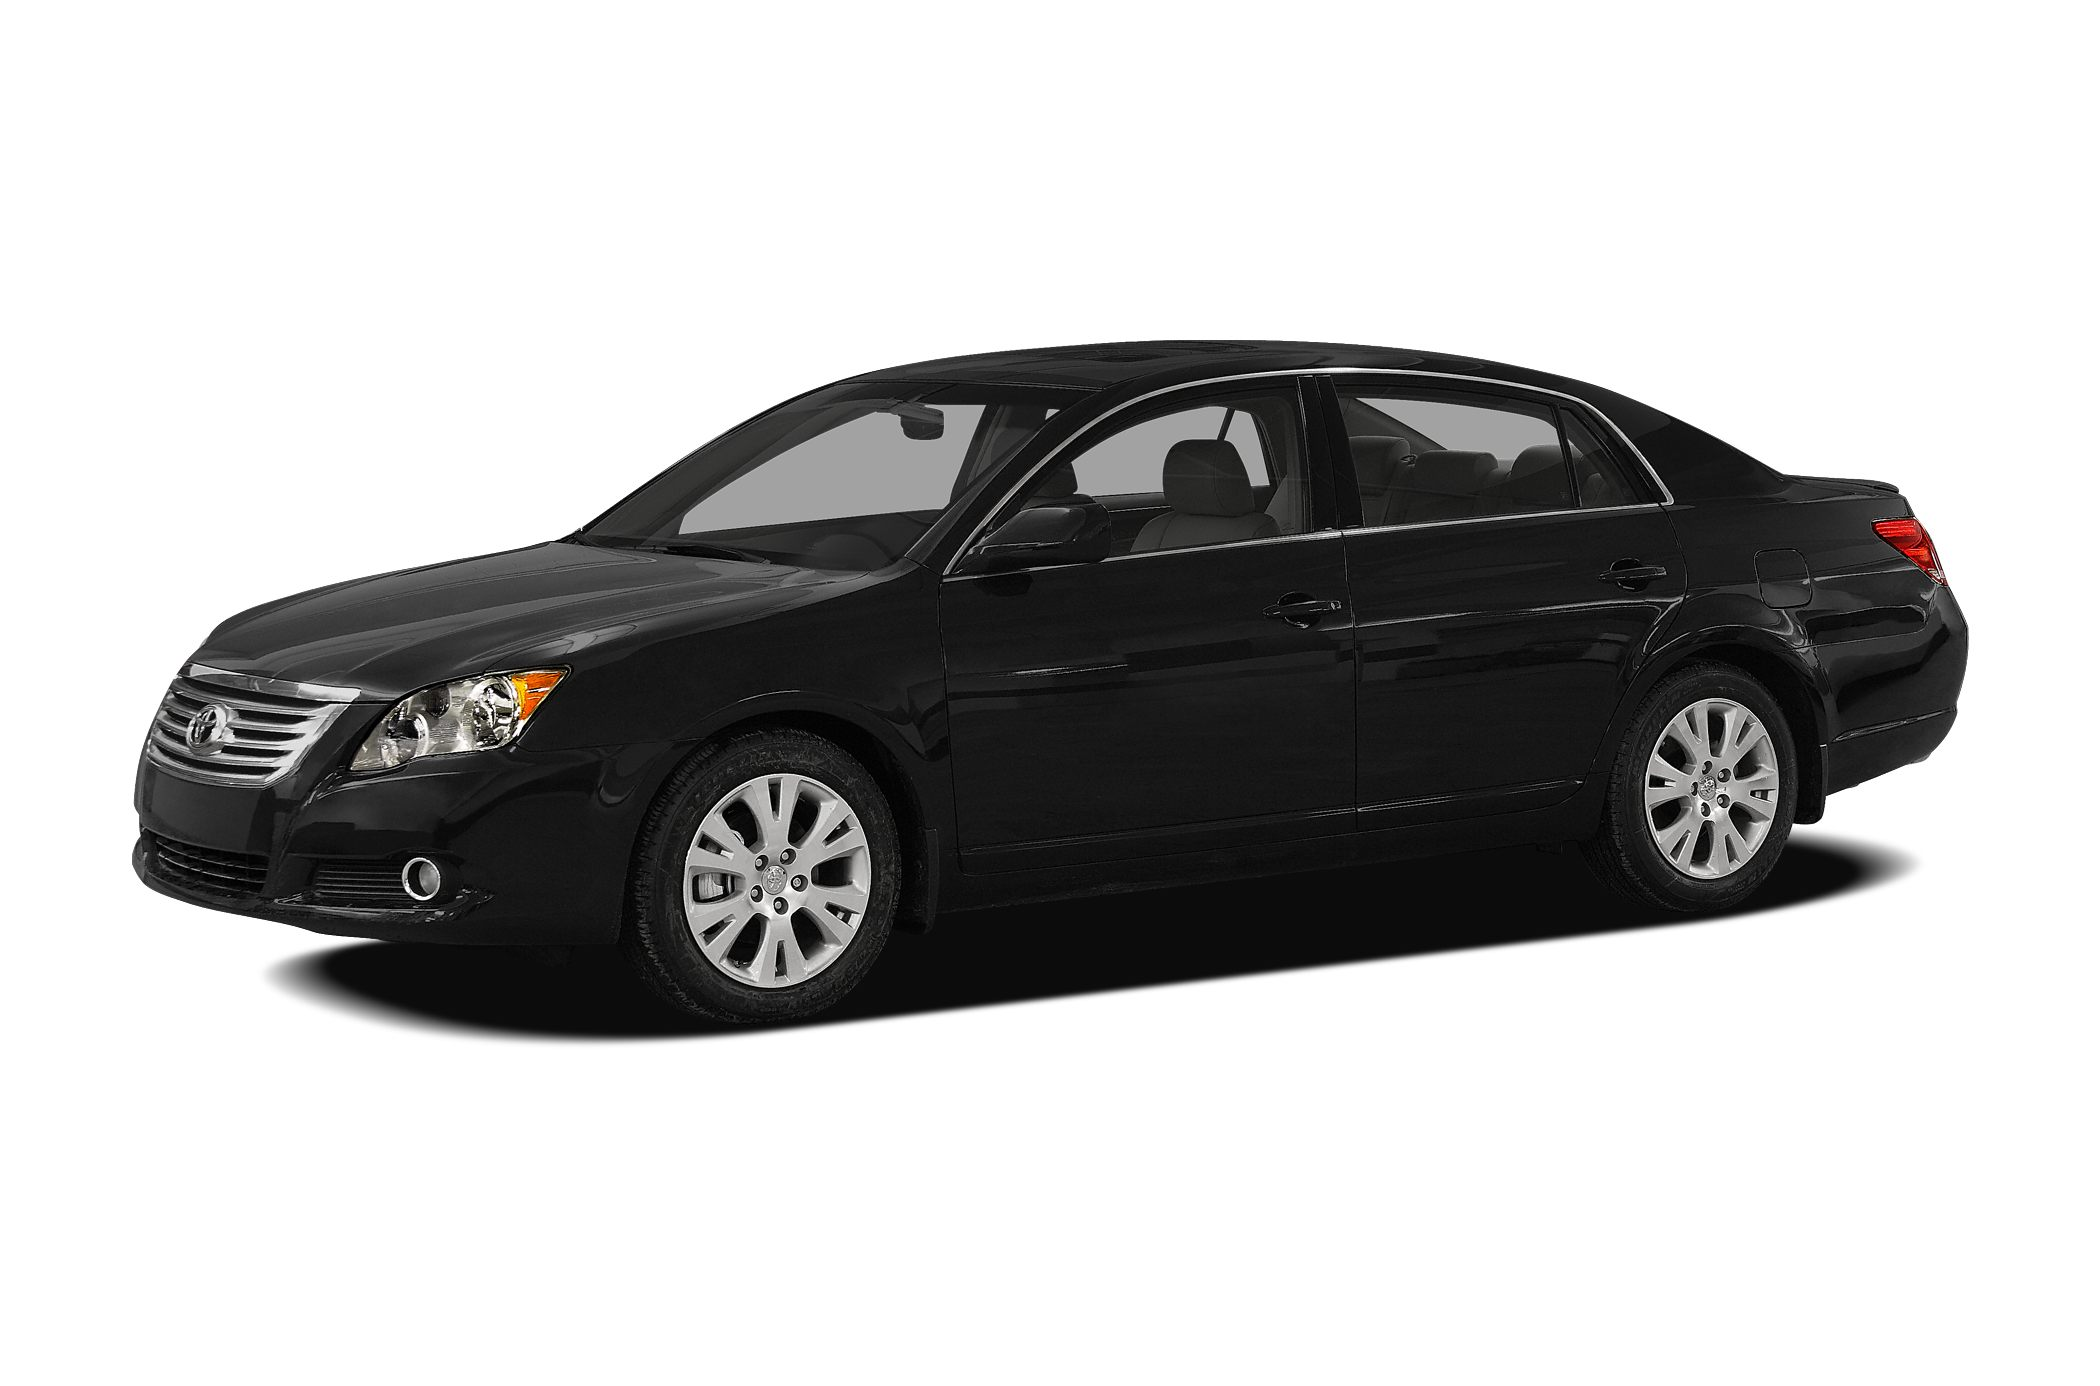 2009 Toyota Avalon XL Sedan for sale in Groton for $13,485 with 84,611 miles.